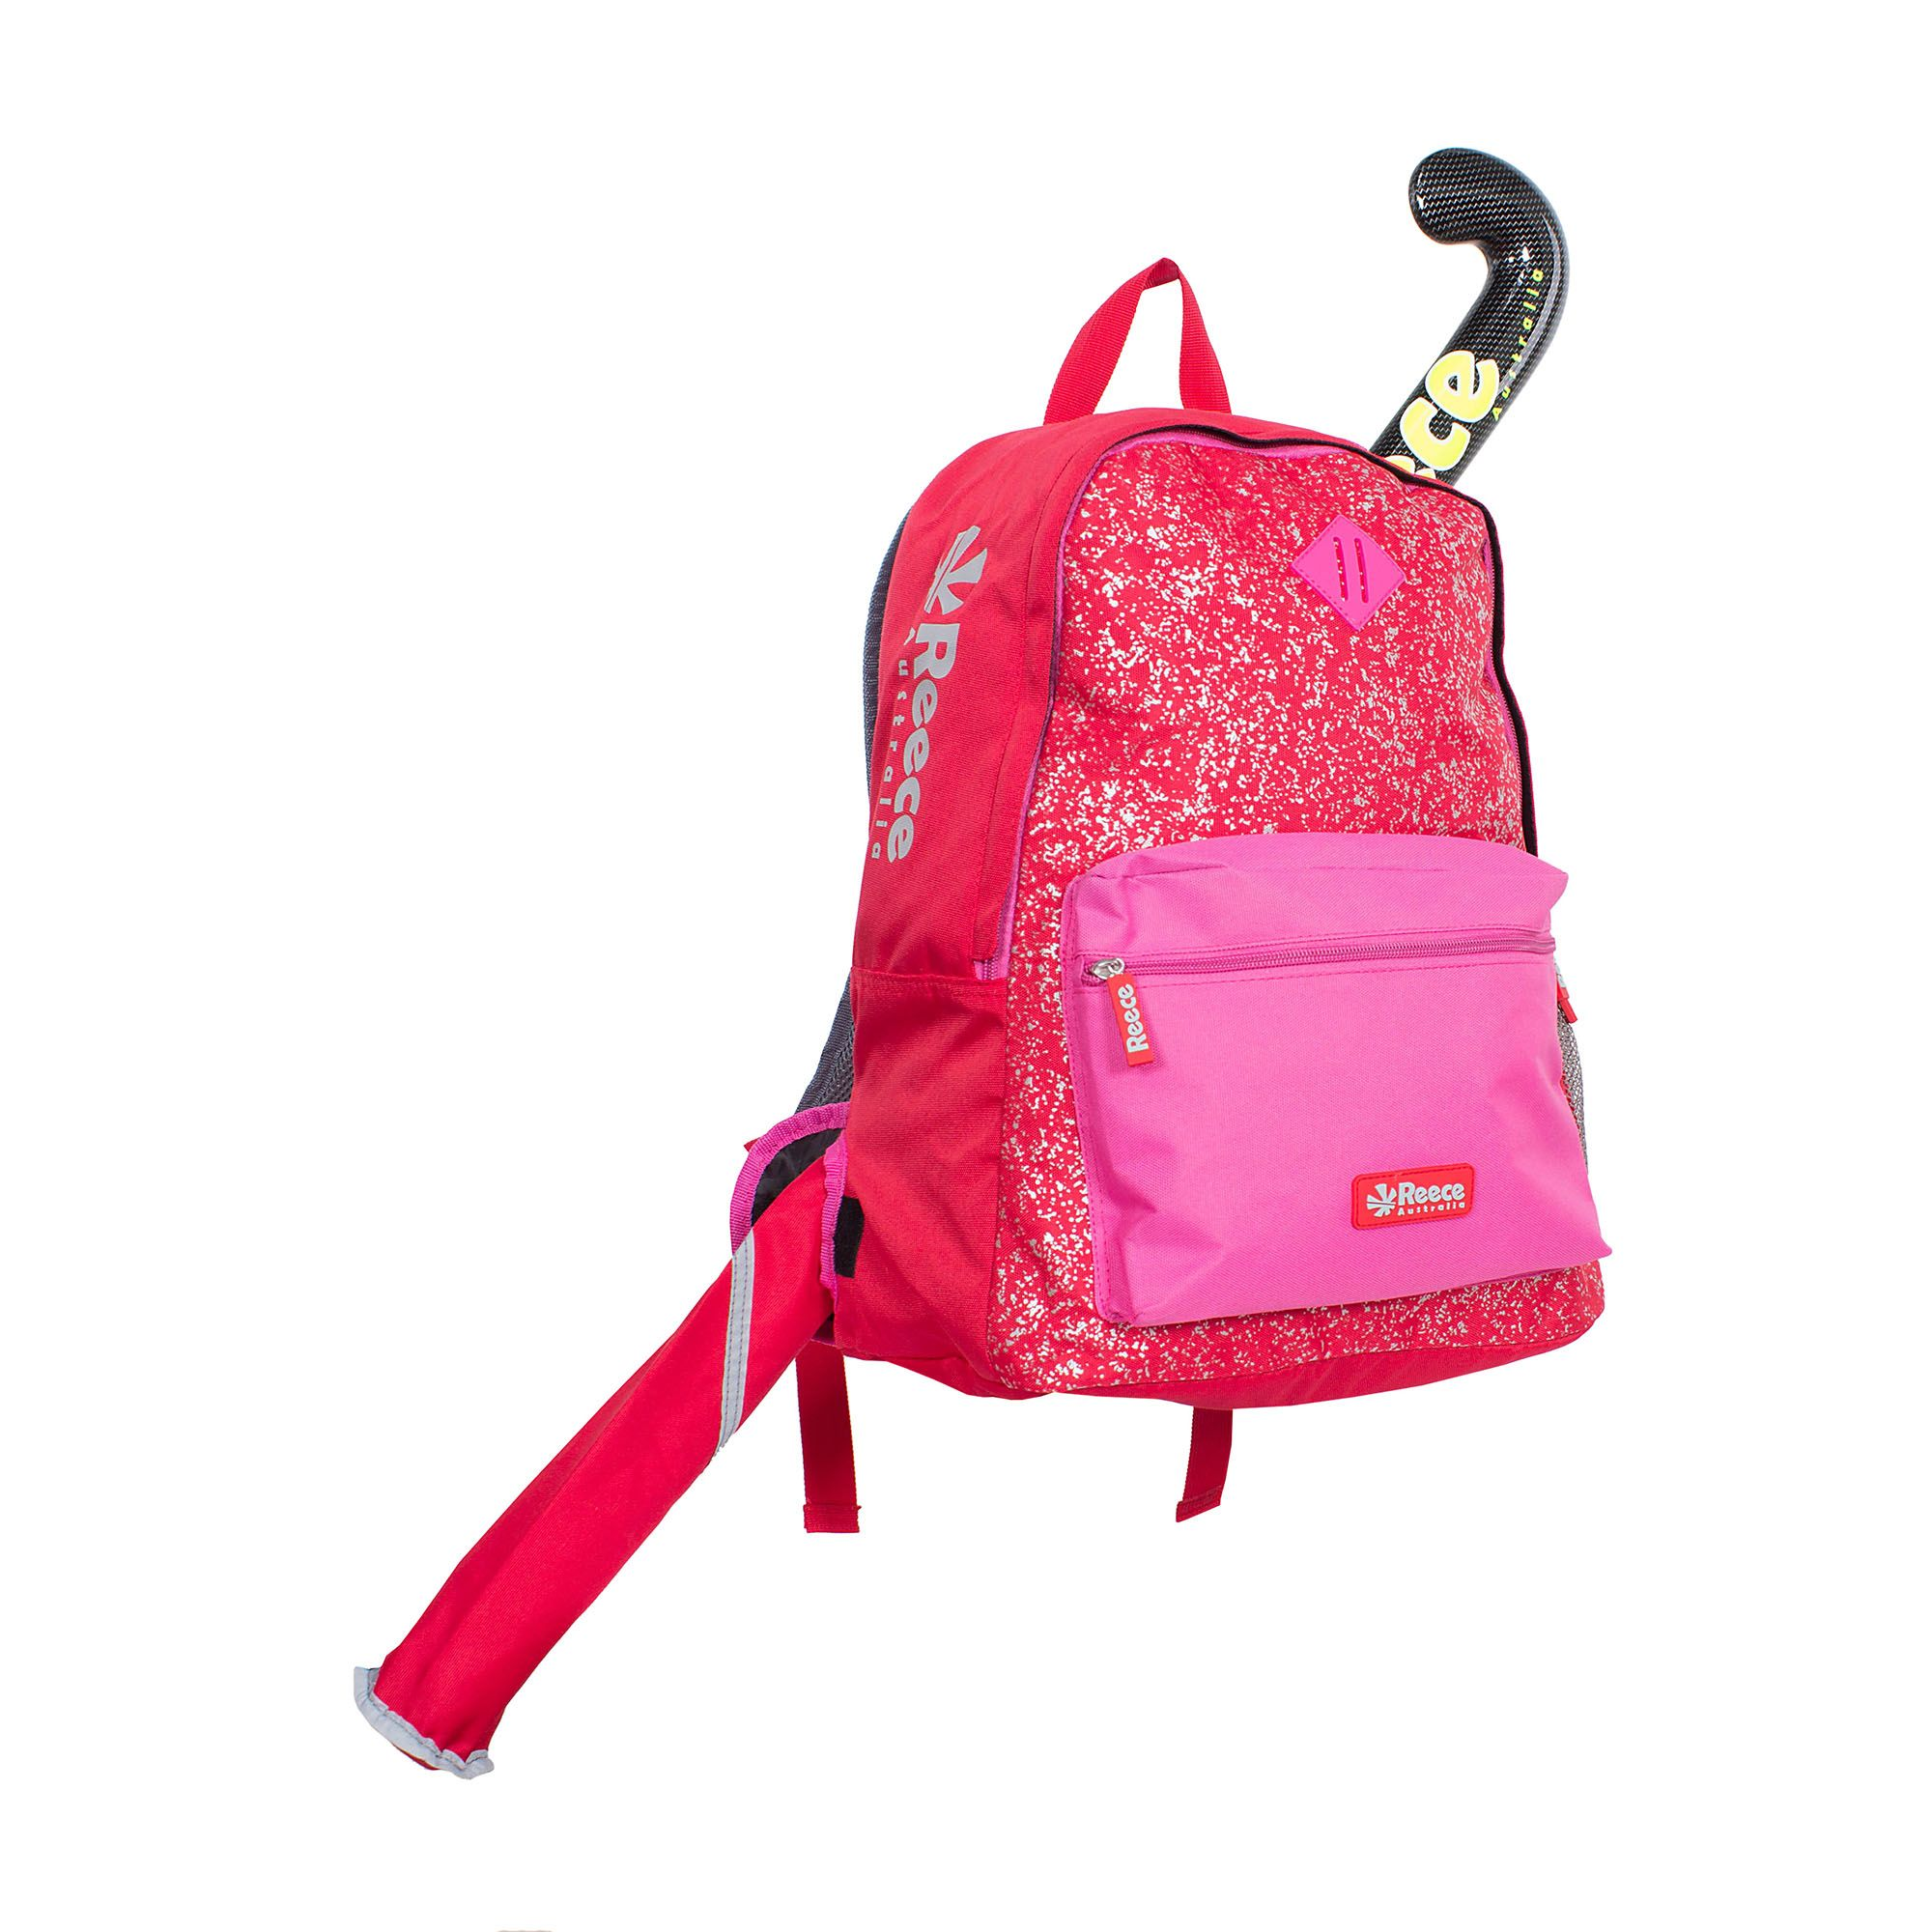 507ee086a4f -Northam Backpack-885813-0060-NO SZ-Pink-Reeceaustralia.com